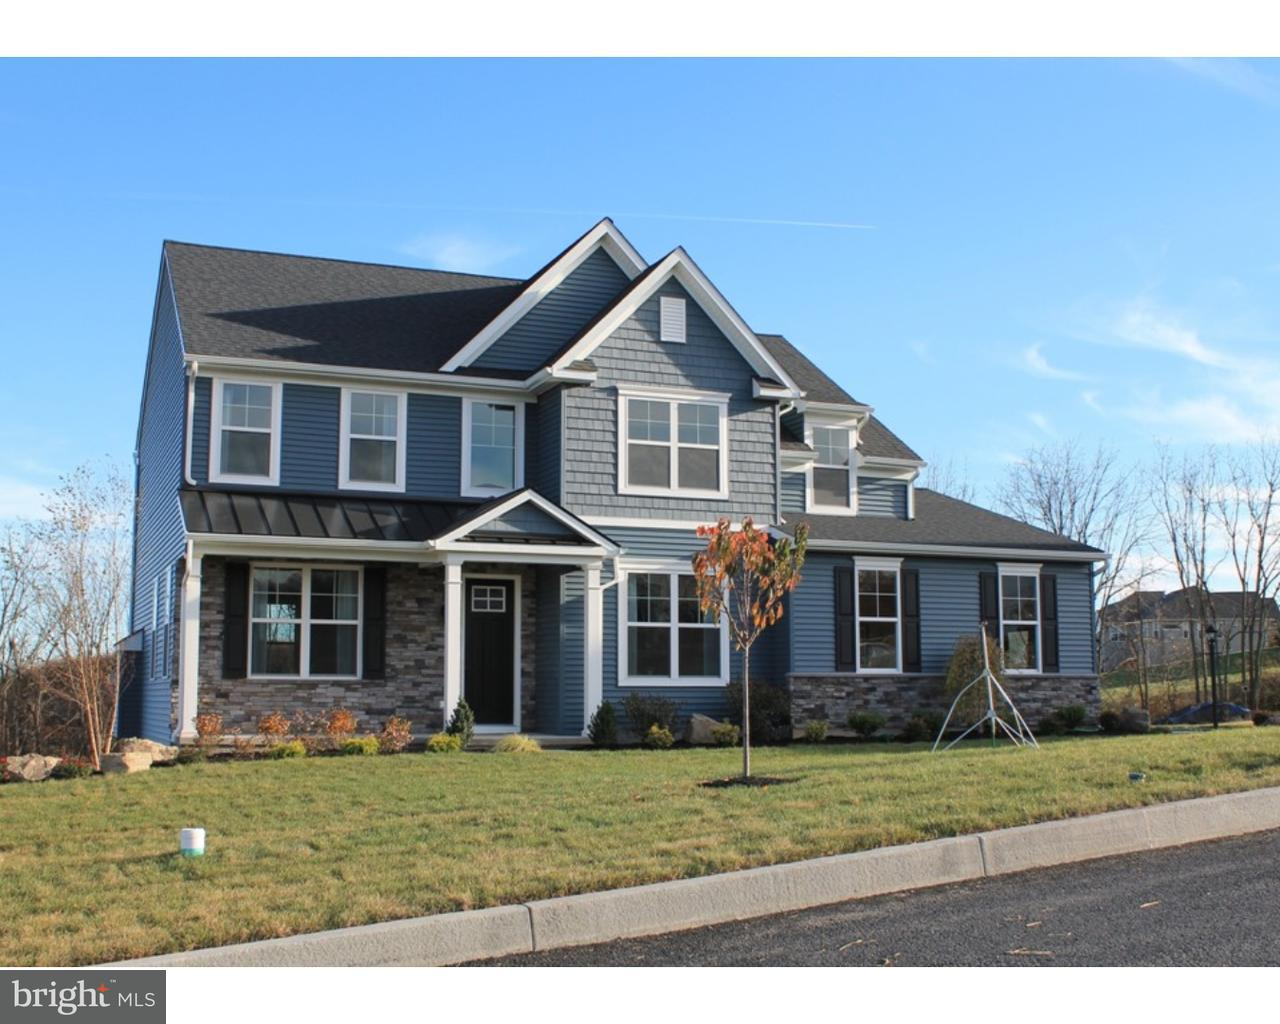 154 SUNDAY RD, KUTZTOWN - Listed at $388,686,